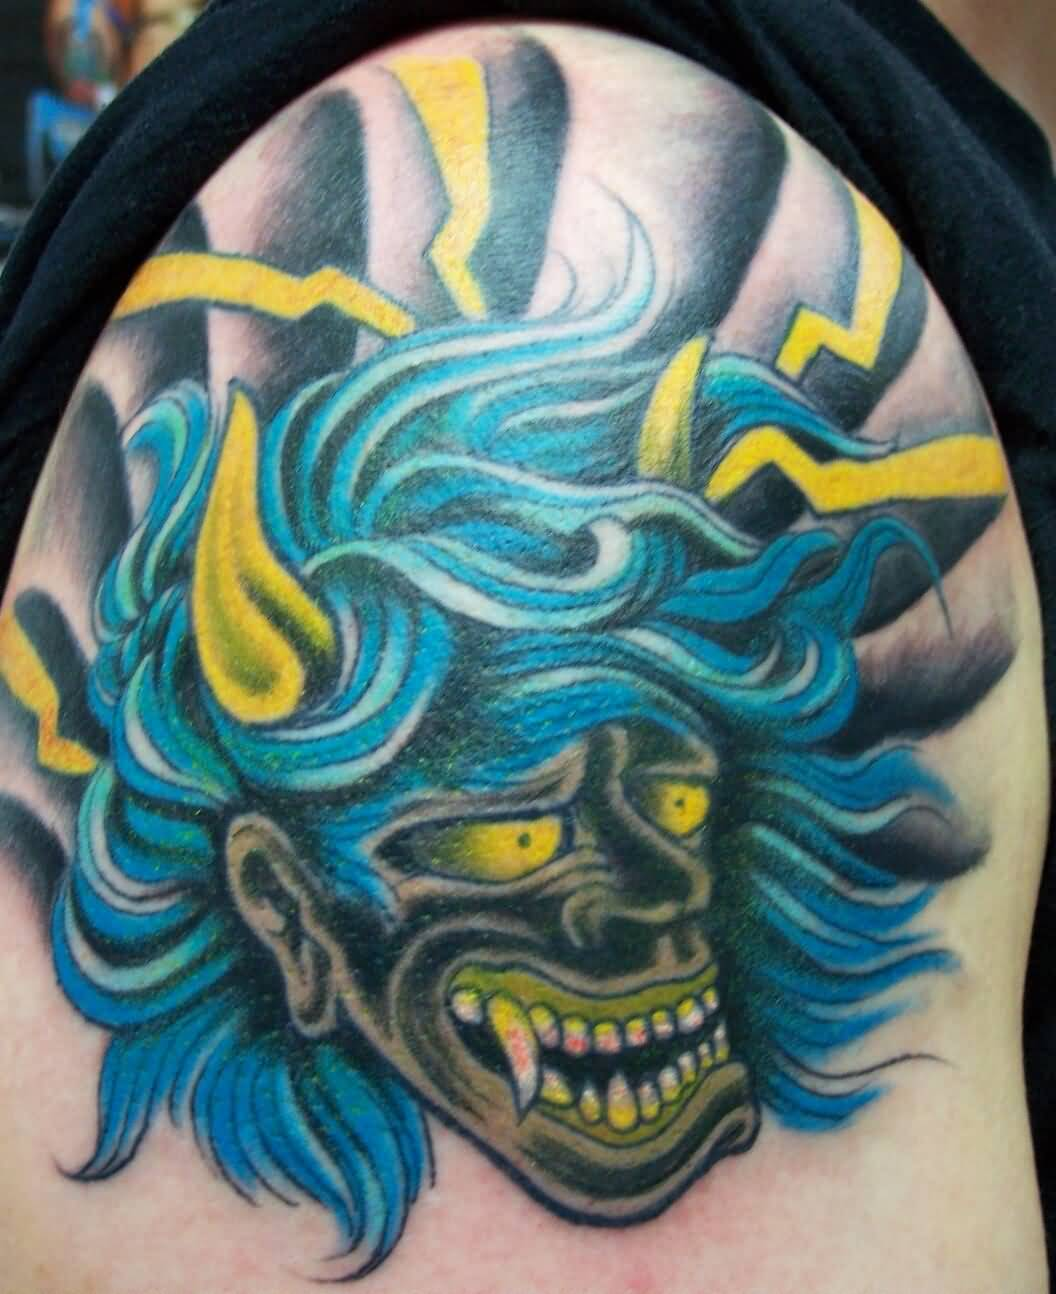 Groovy Mask Tattoo Made With Bluye Ink On Shoulder